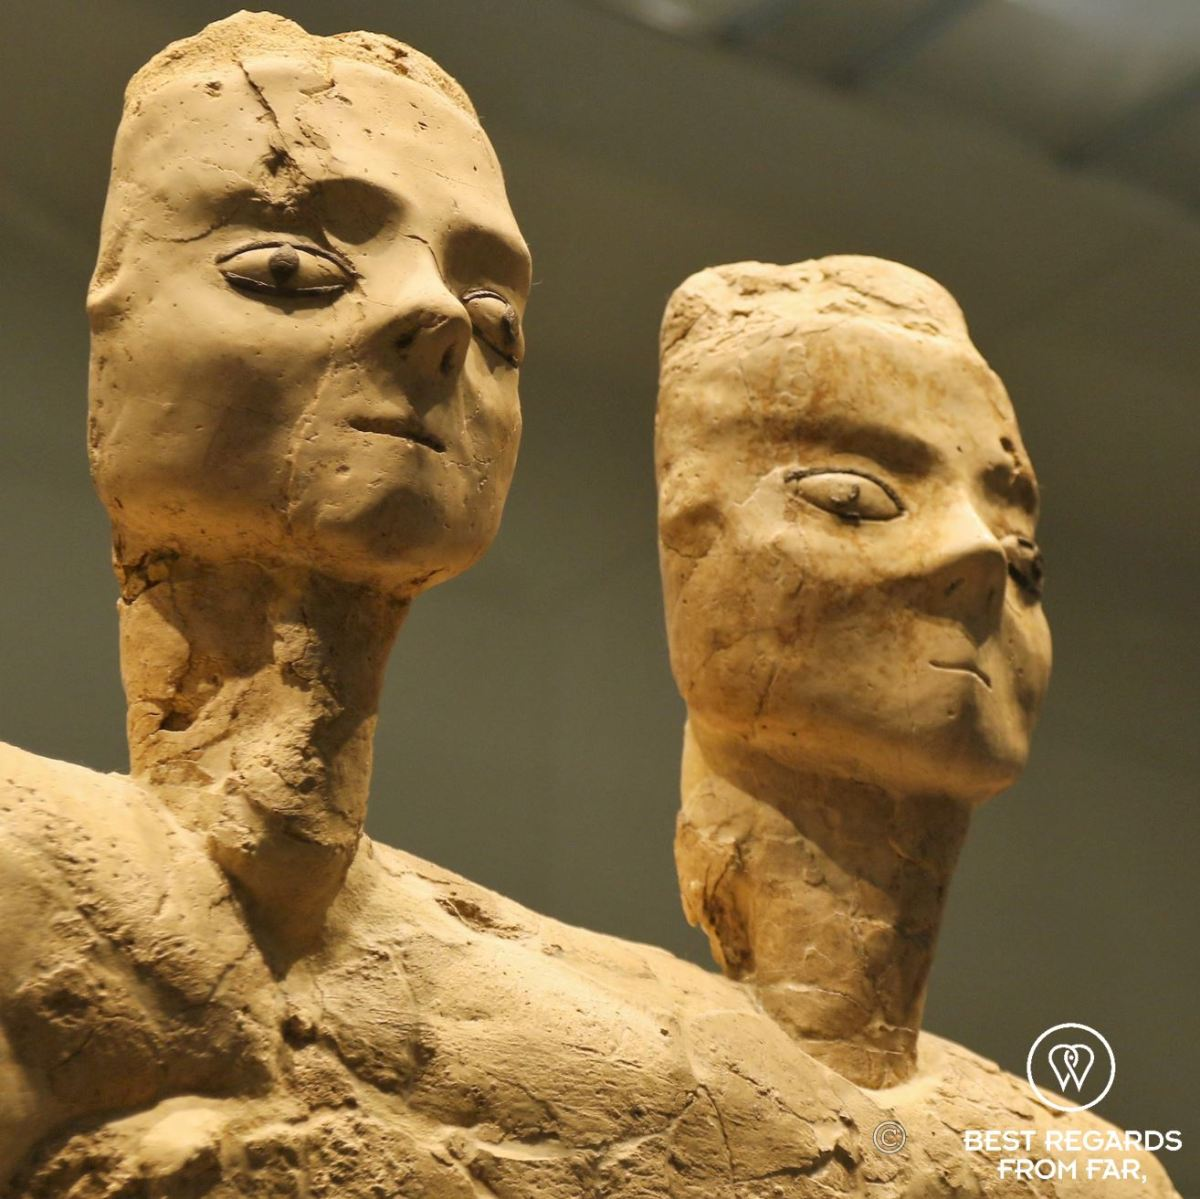 Monumental statue with 2 heads, Jordan, 6500BCE, Louvre Abu Dhabi, UAE